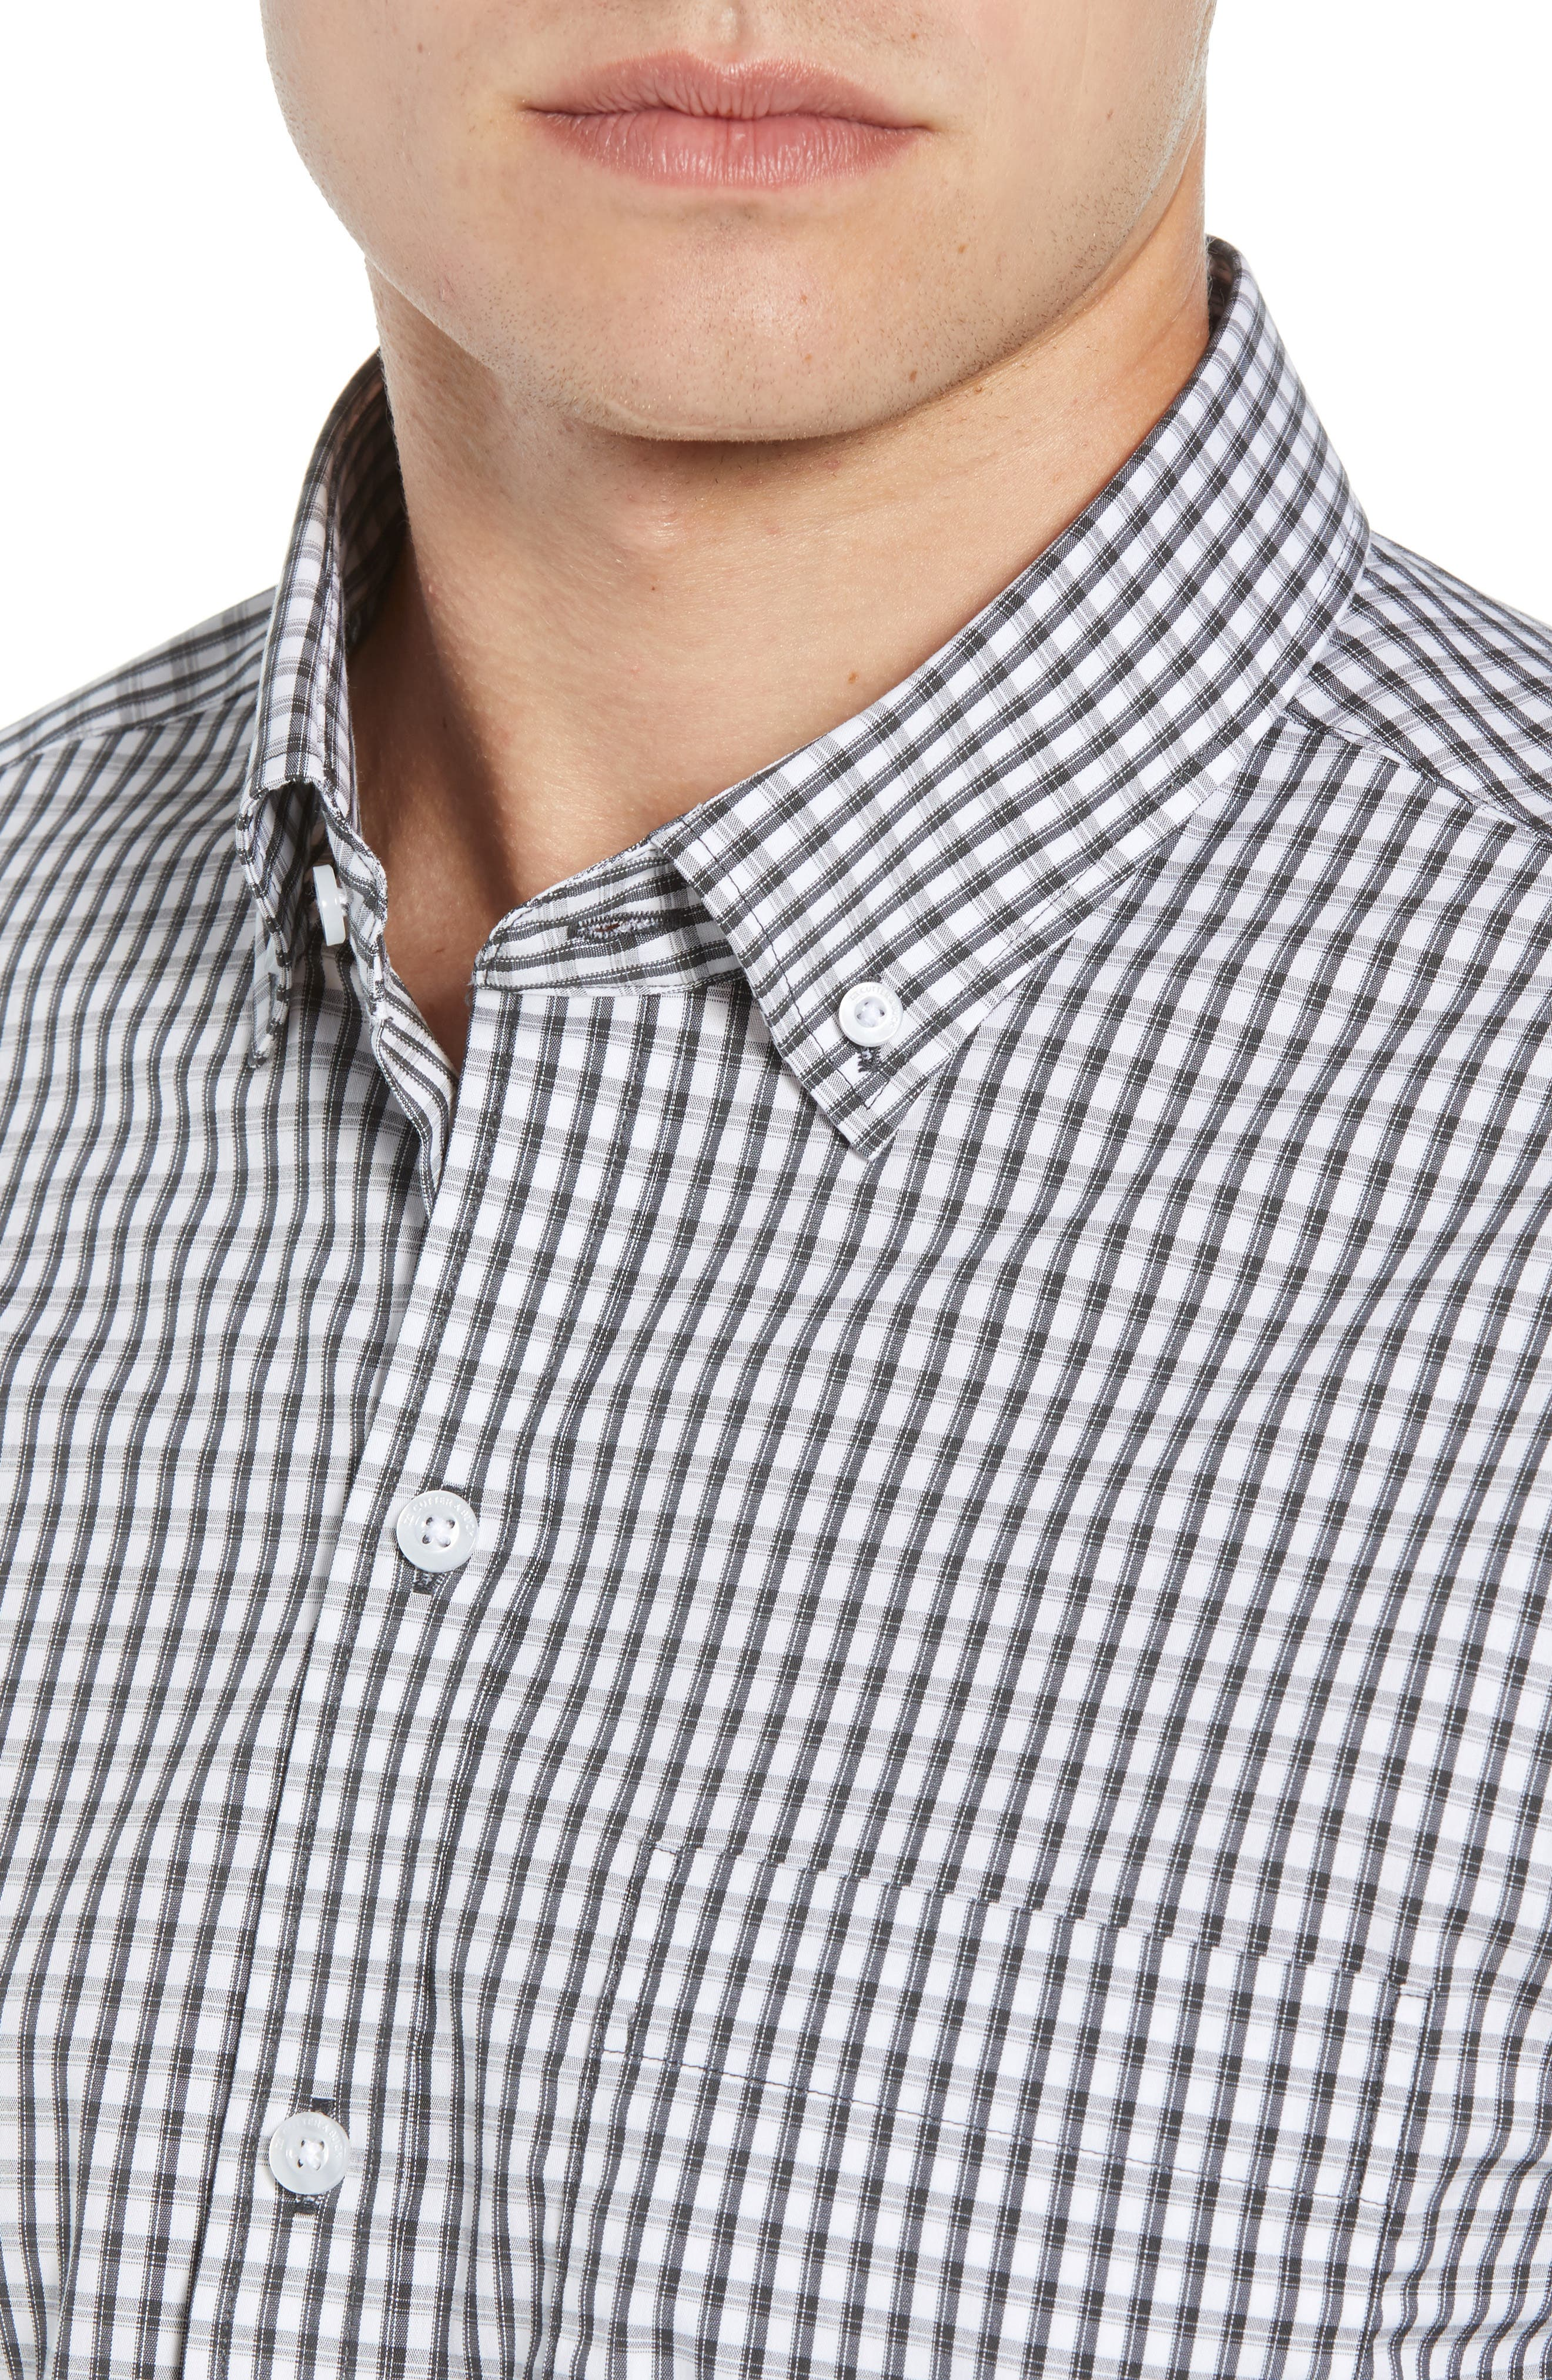 Regular Fit Gingham Non-Iron Sport Shirt,                             Alternate thumbnail 2, color,                             CHARCOAL